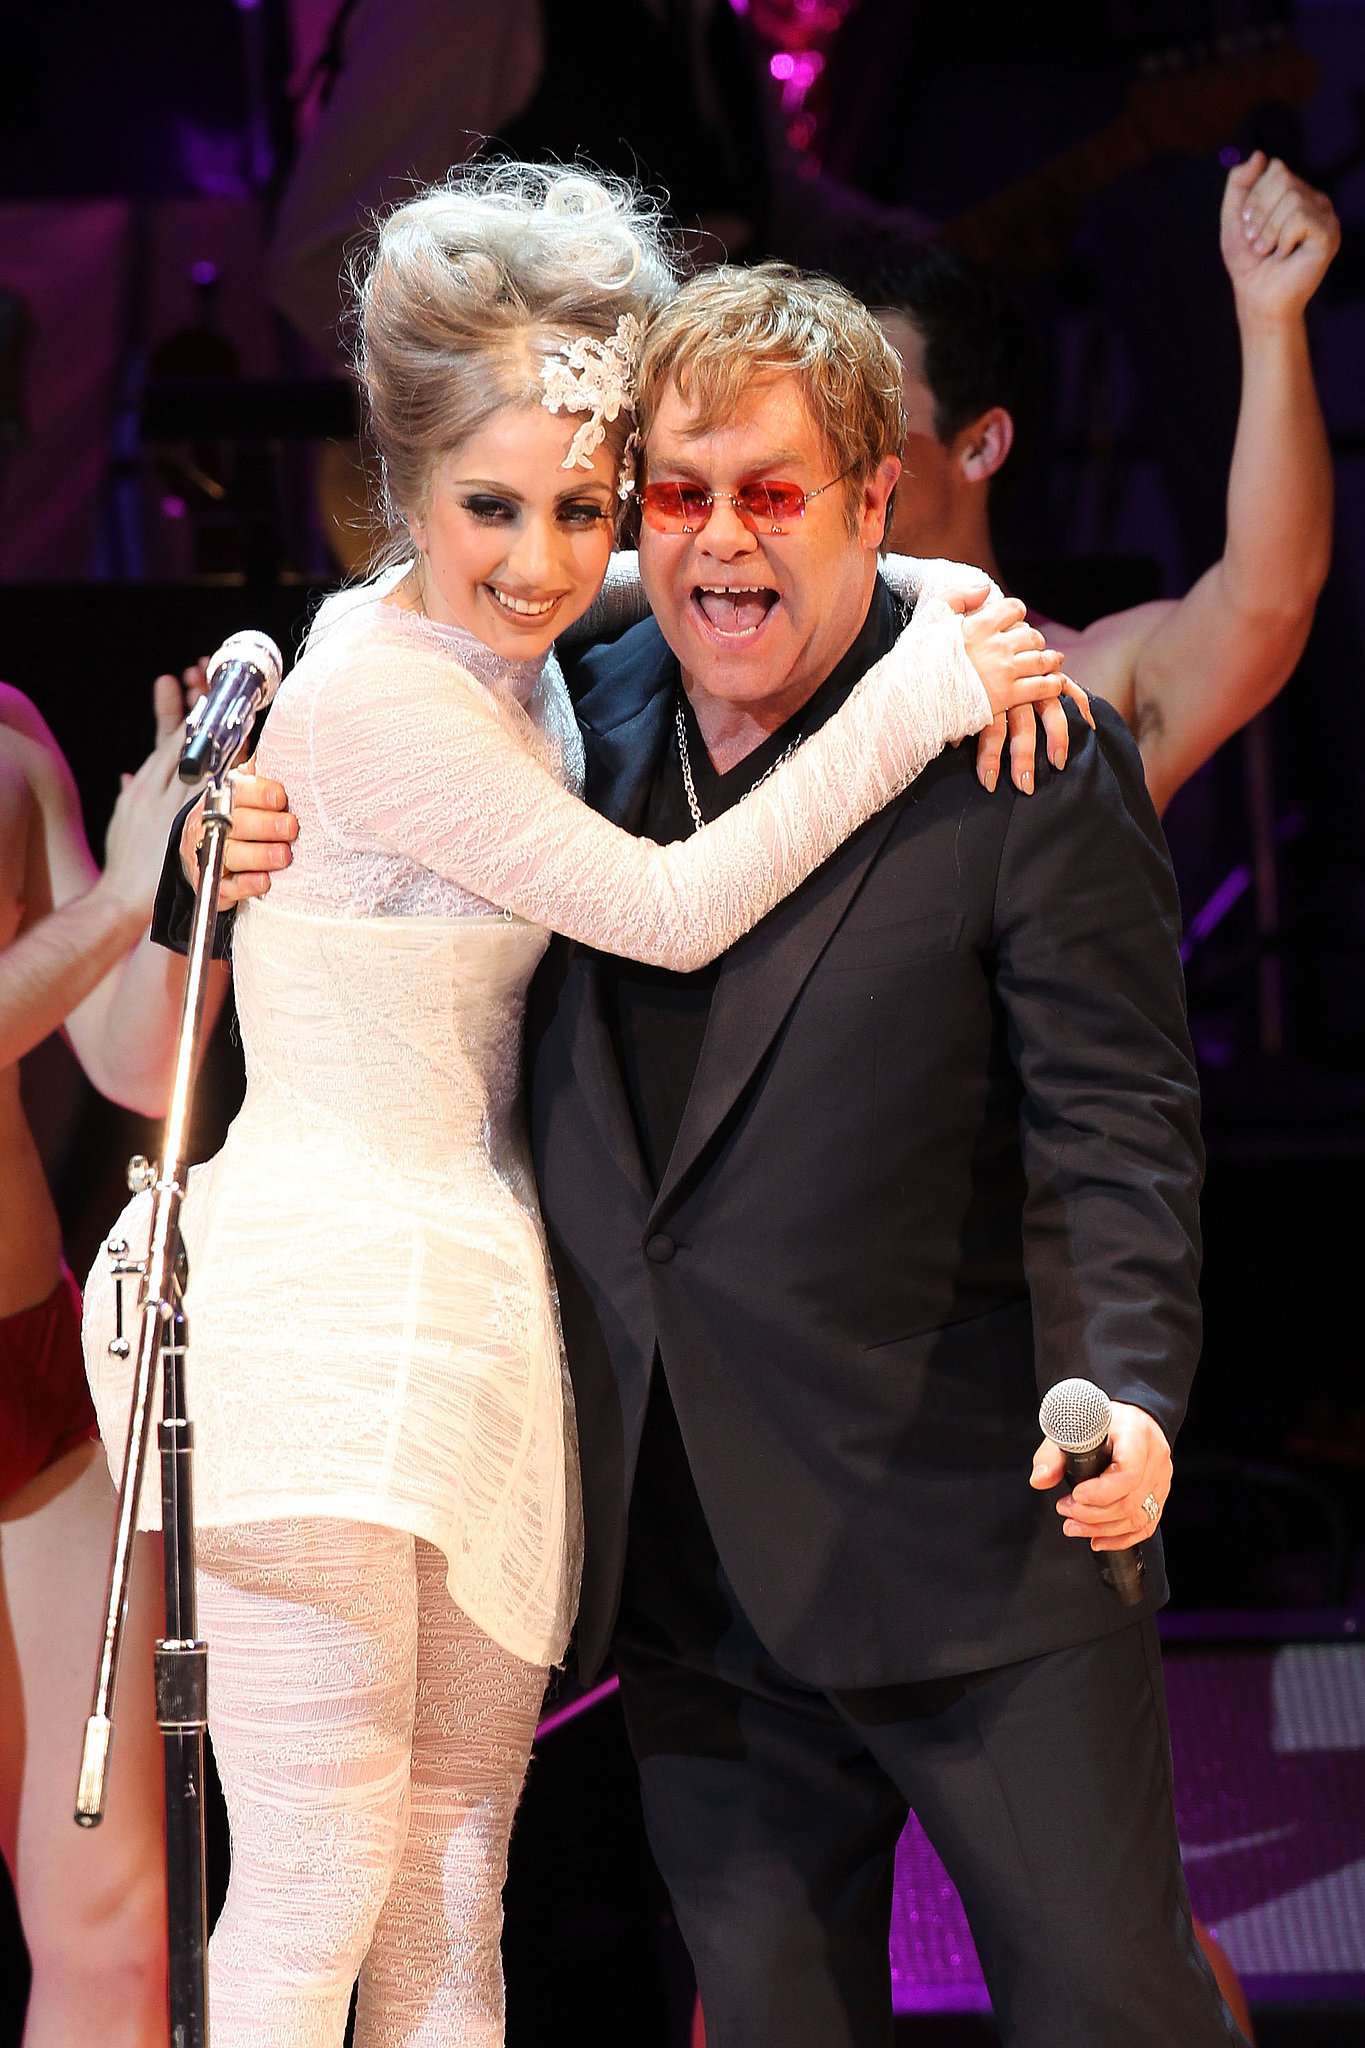 "When Elton John and his husband, David Furnish, welcomed their son Zachary in 2011, they asked Lady Gaga to act as his godmother. The couple confirmed the news in an interview with Barbara Walters, saying, ""When you get to the real person under there, there's a real simple person under there who loves her parents."" Gaga has clearly done a good job with the role, as Elton and David gave her the title for their second son, Elijah, who was born in April 2013. Elton"